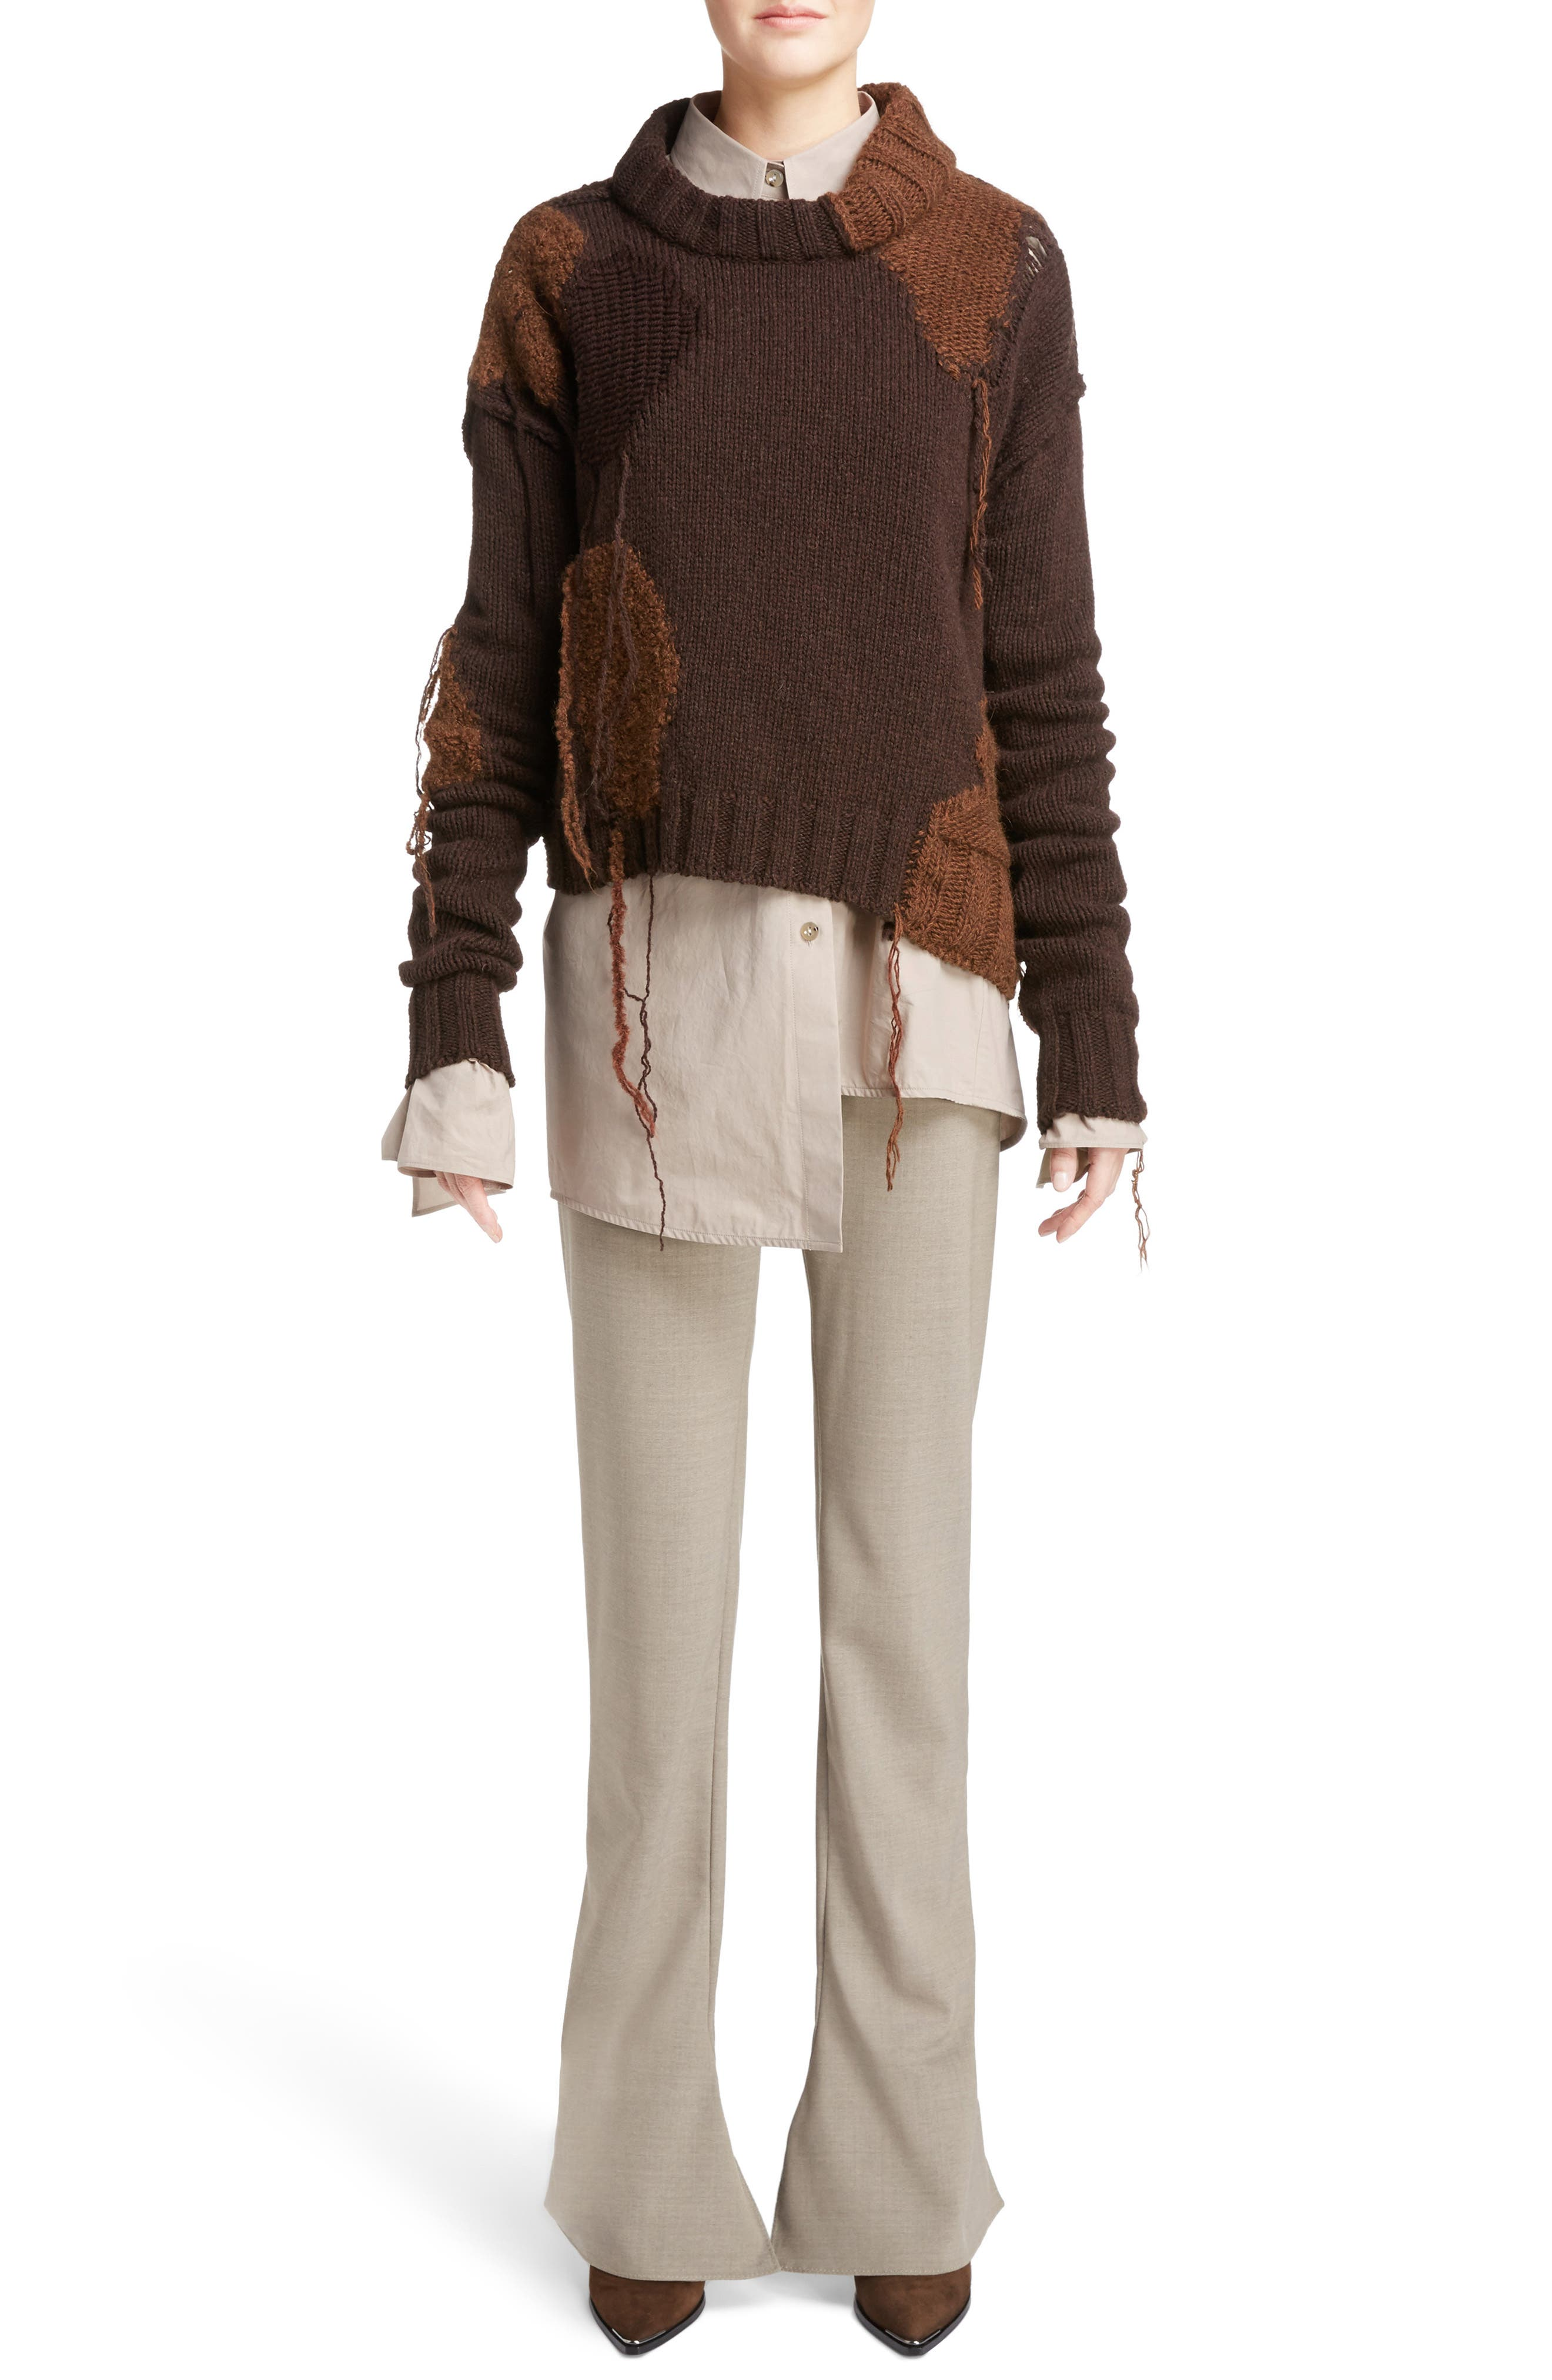 Ovira Distressed Patchwork Sweater,                             Alternate thumbnail 7, color,                             200